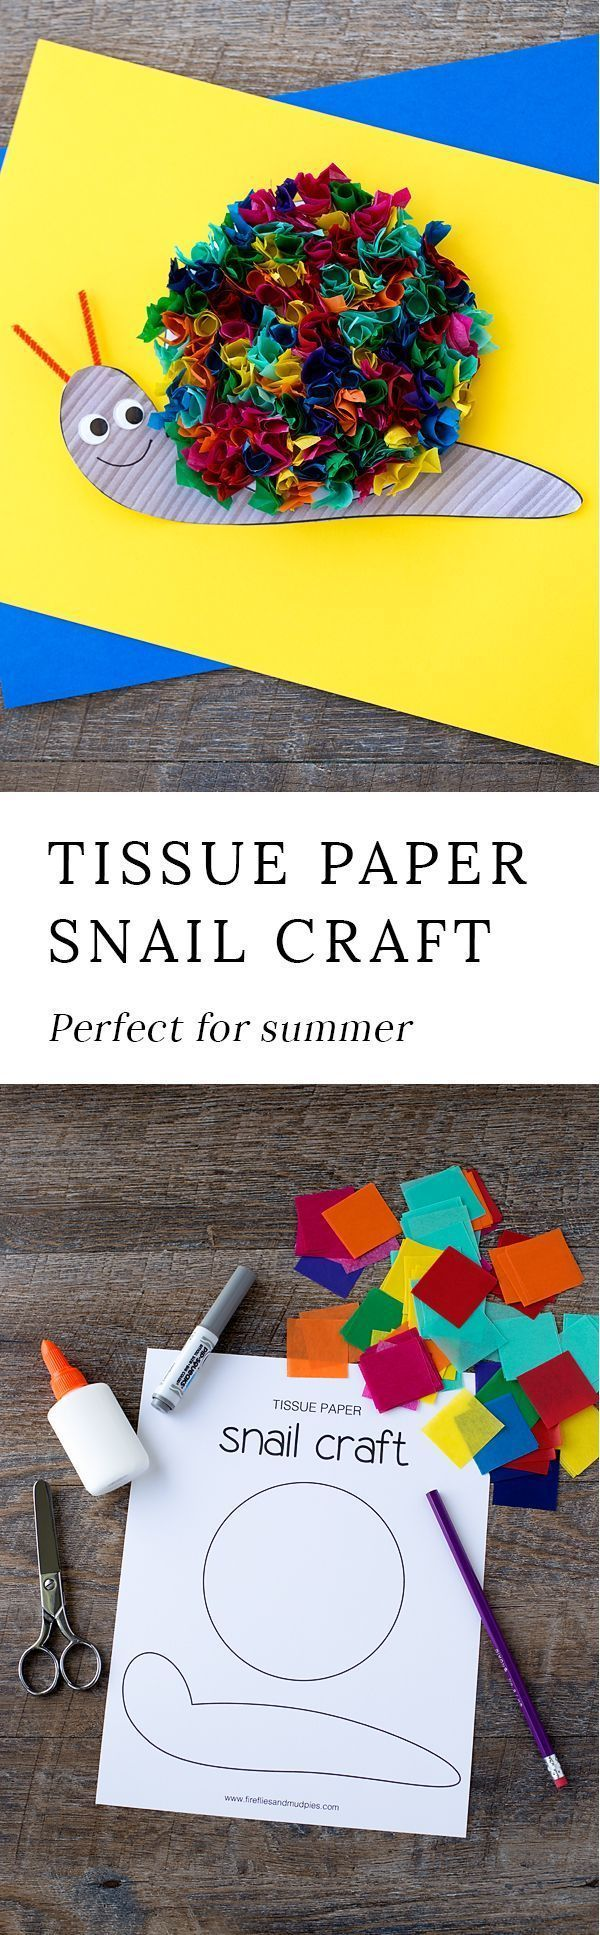 tissue paper snail craft kids 39 craft ideas pinterest kinder basteln und bastelideen. Black Bedroom Furniture Sets. Home Design Ideas